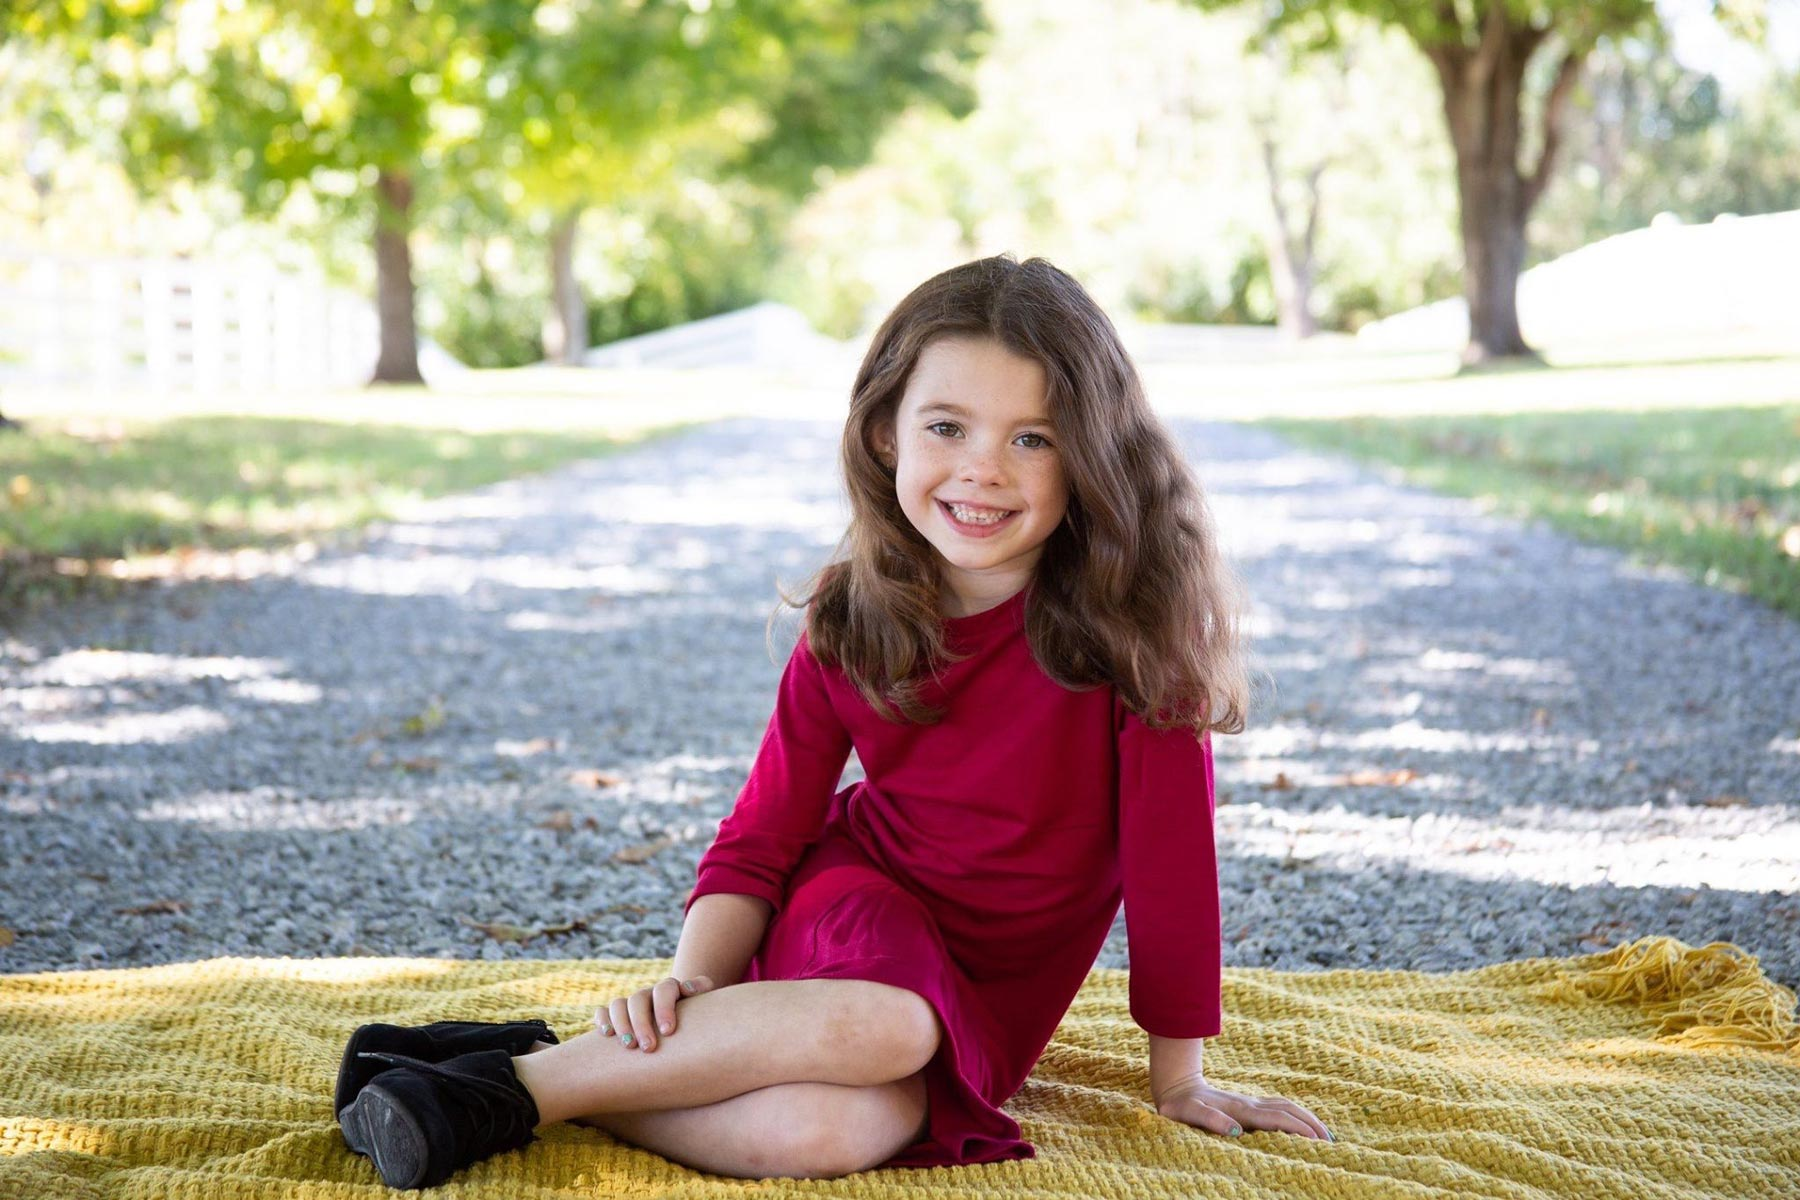 Izzy leans on one arm while sitting on a yellow blanket in her driveway and smiles.